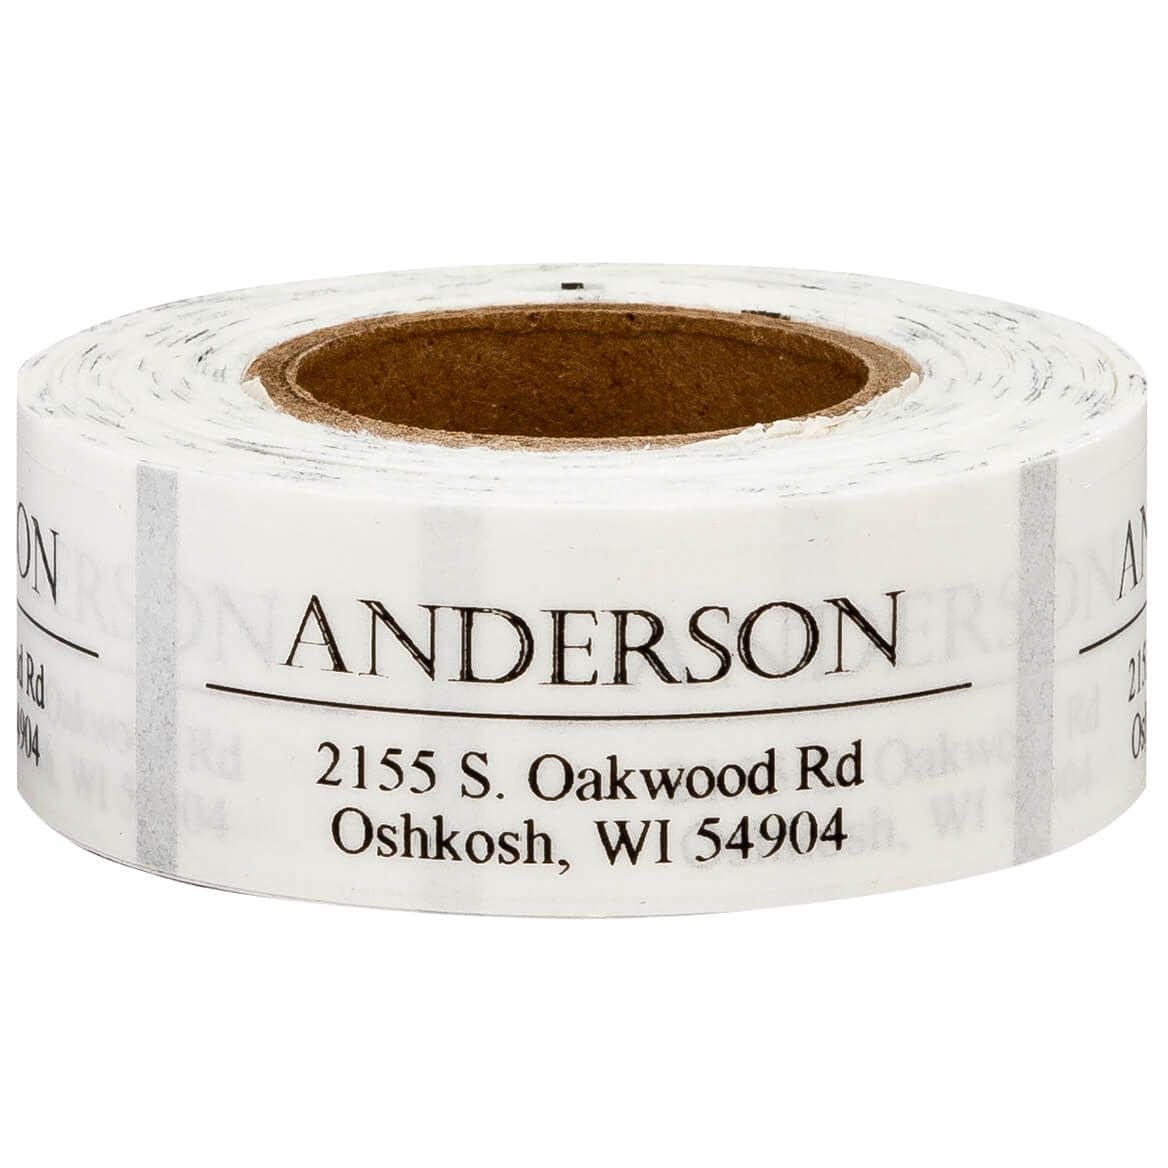 Personalized Bold and Centered Address Labels, 200-351398